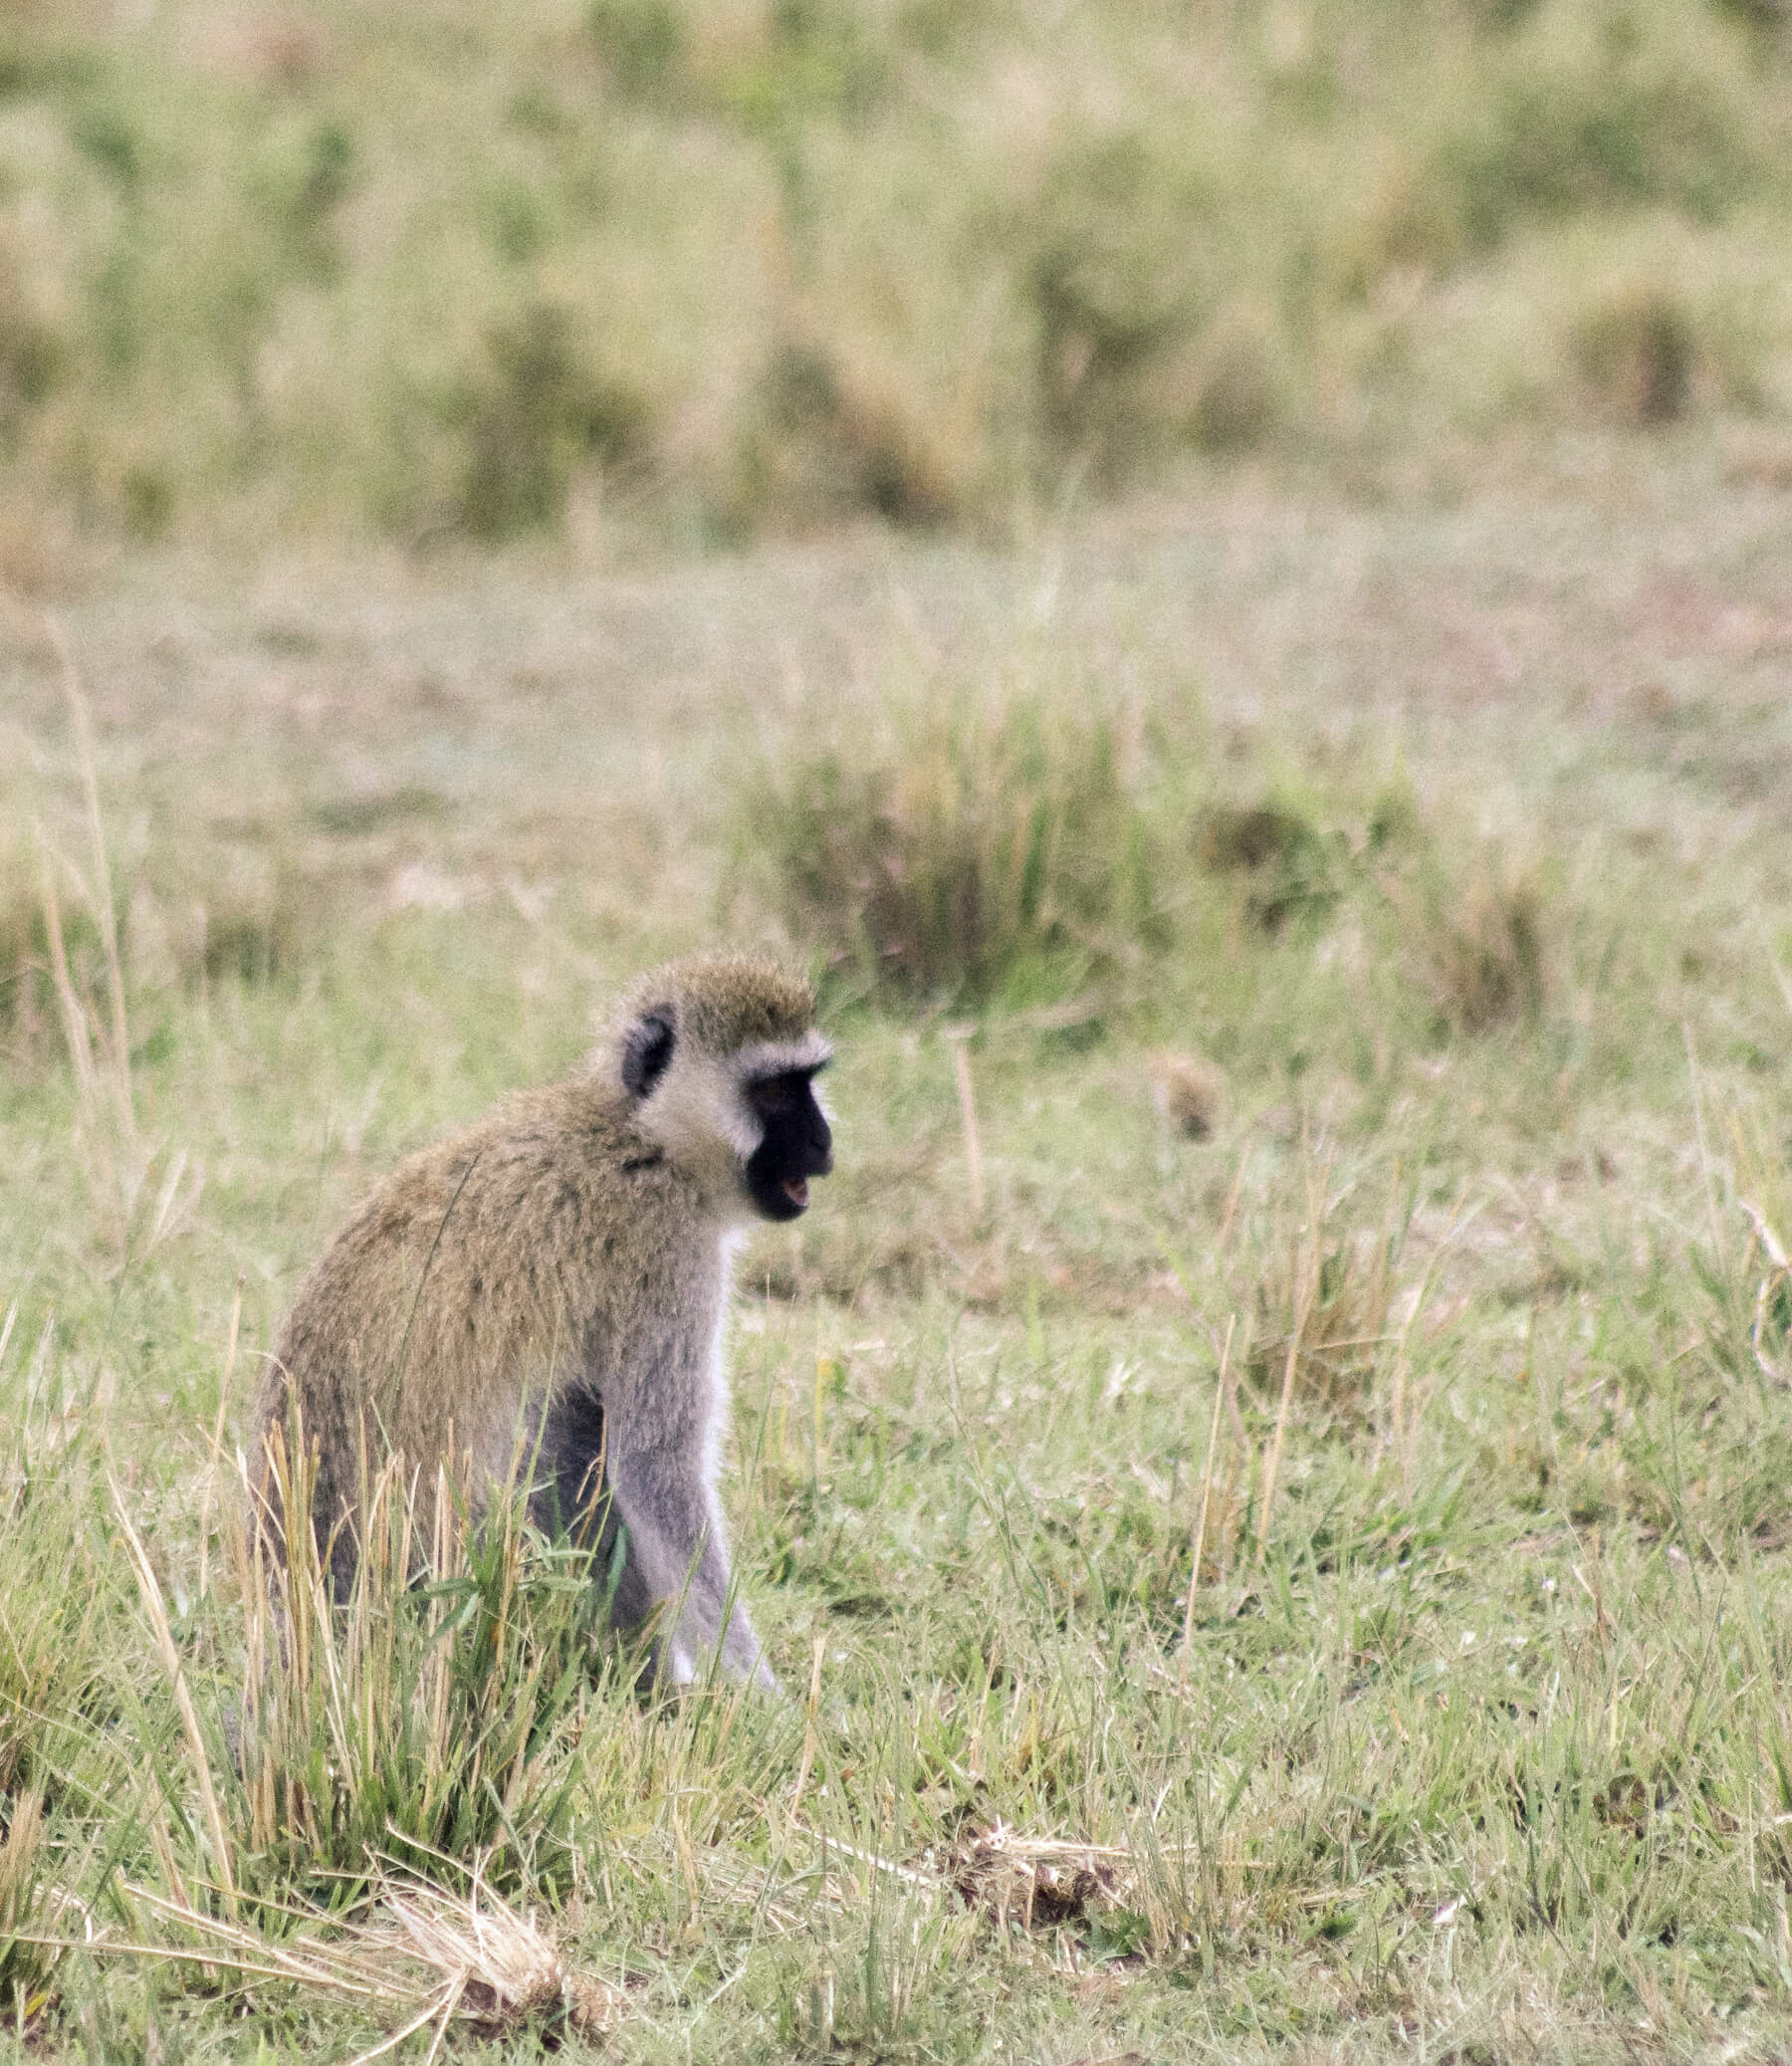 A small grey Vervet Monkey sitting in the grass